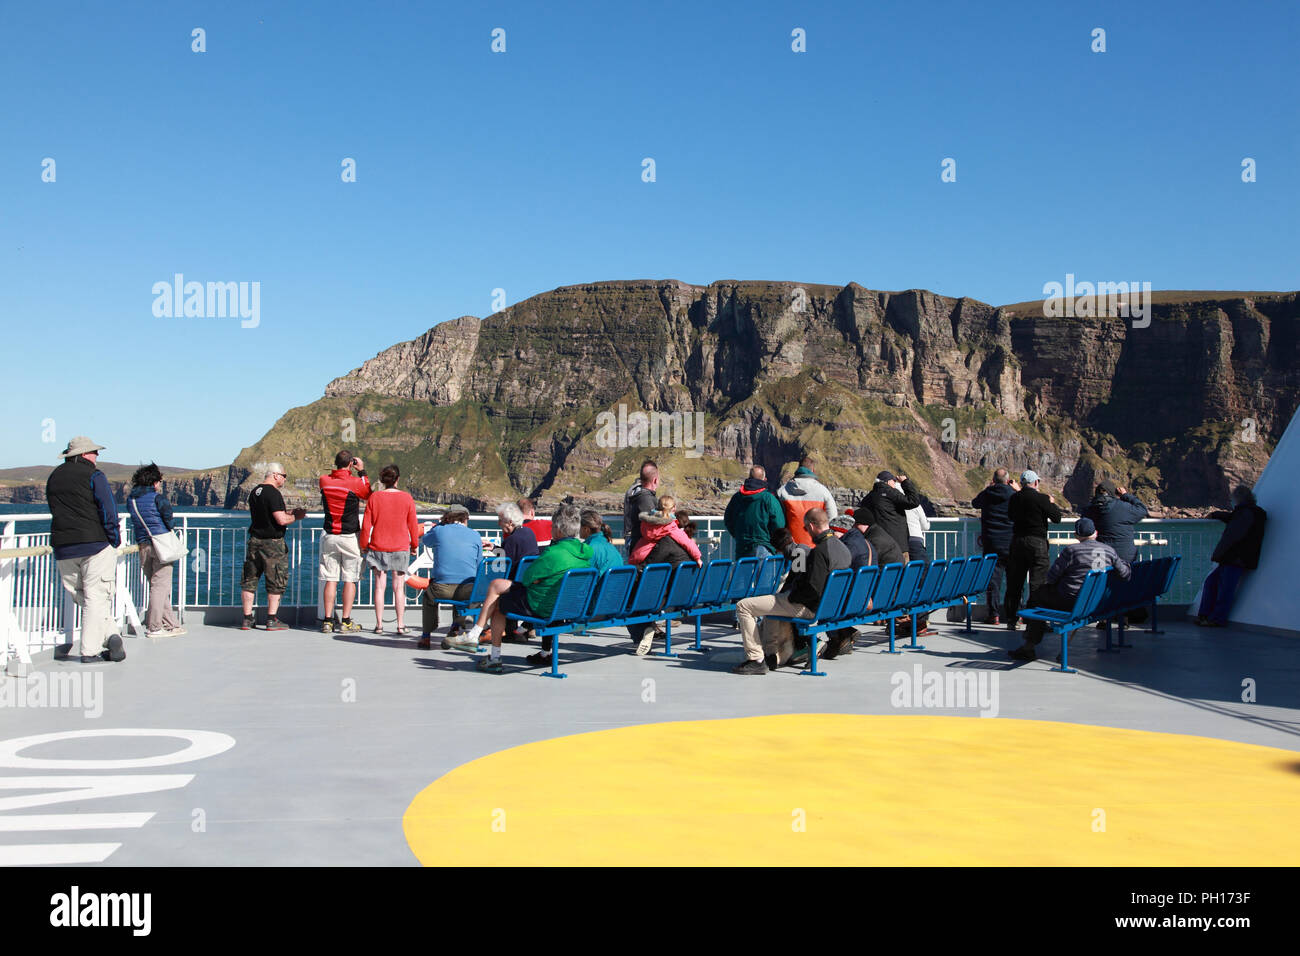 The Northlink ferry MV Hamnavoe passing the cliffs of St John's Head on Hoy, Orkney, Scotland - Stock Image